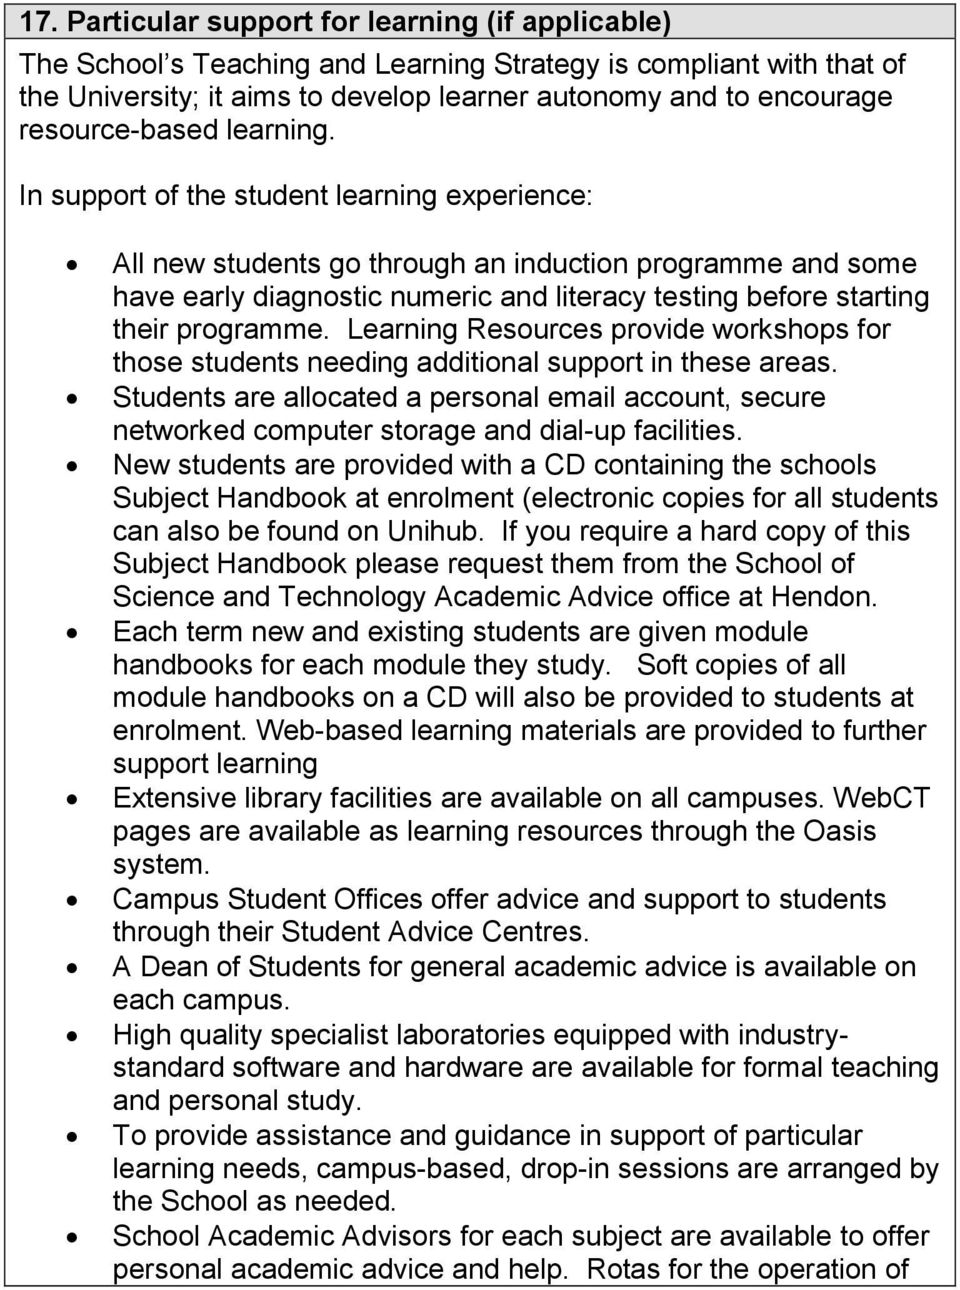 In support of the student learning experience: All new students go through an induction programme and some have early diagnostic numeric and literacy testing before starting their programme.